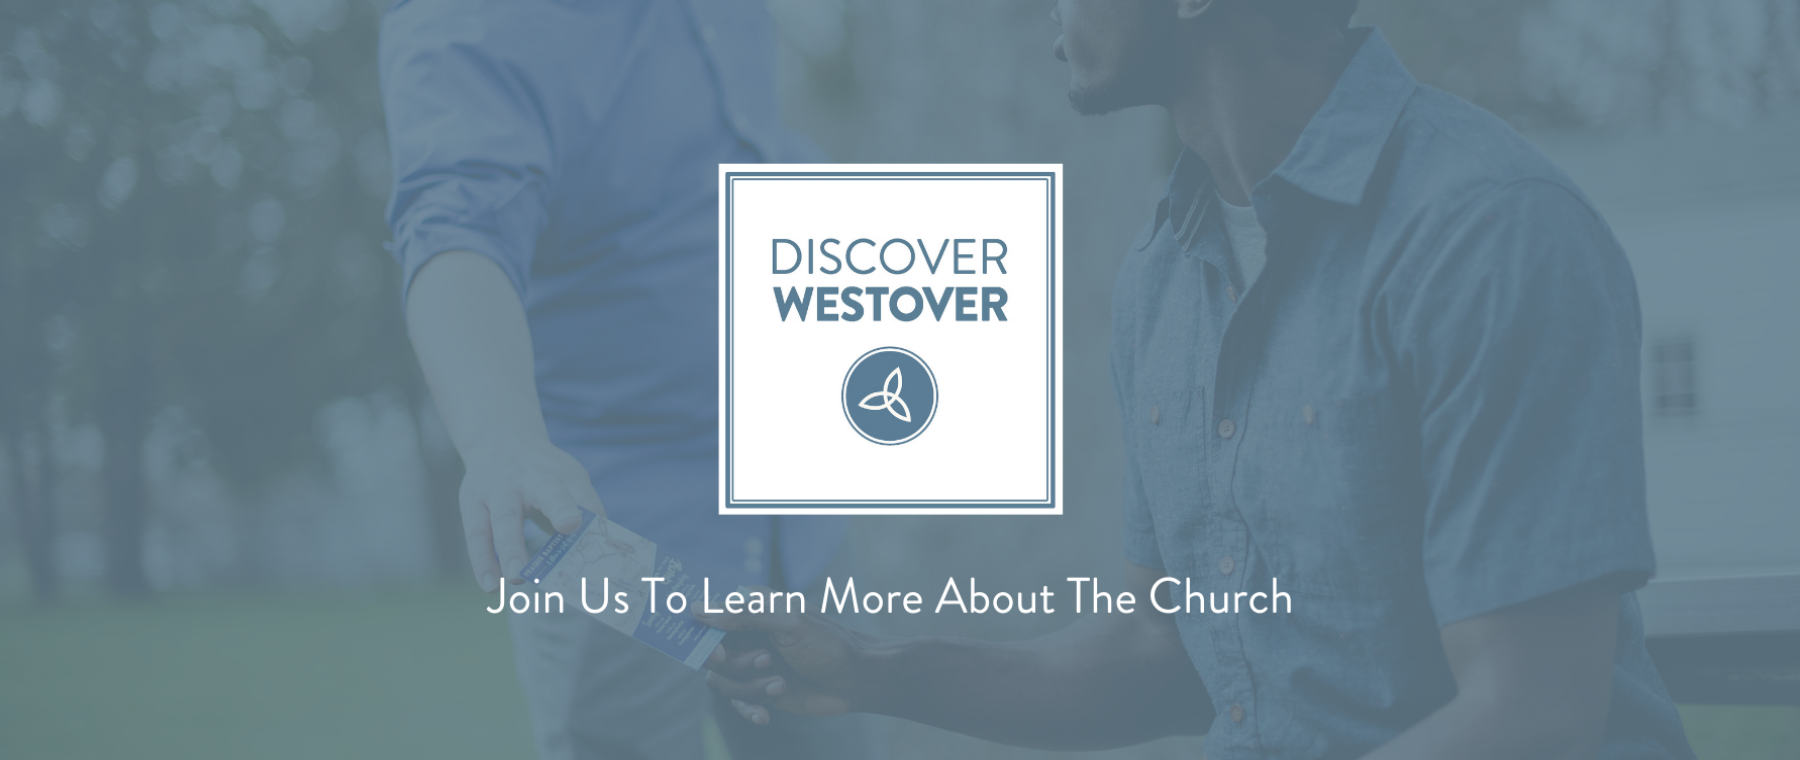 Discover Westover